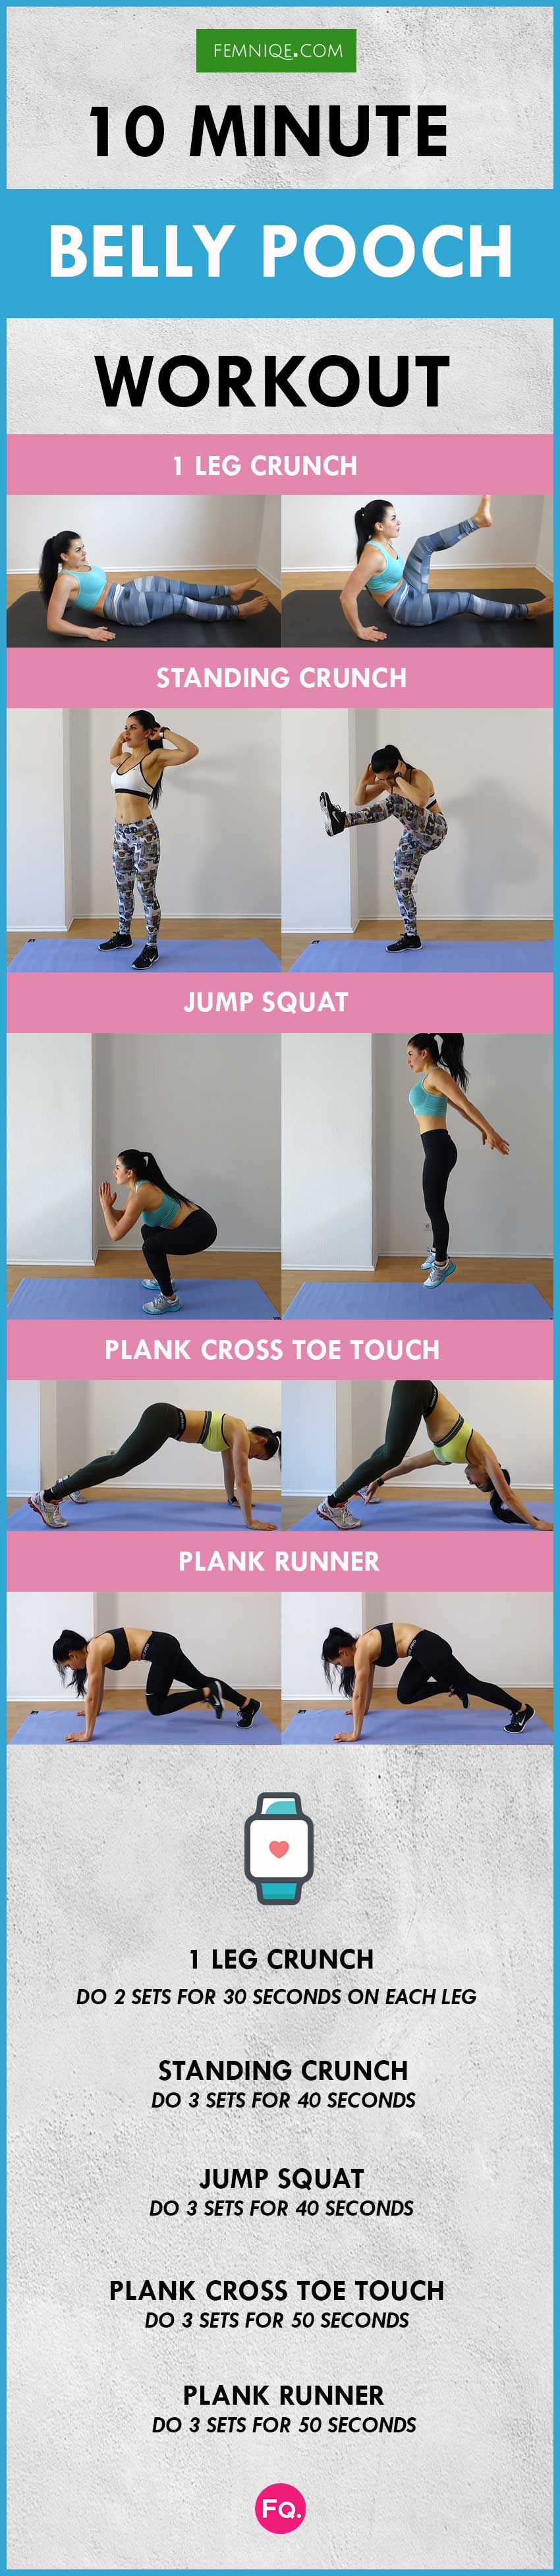 how to lose belly pooch fat workout